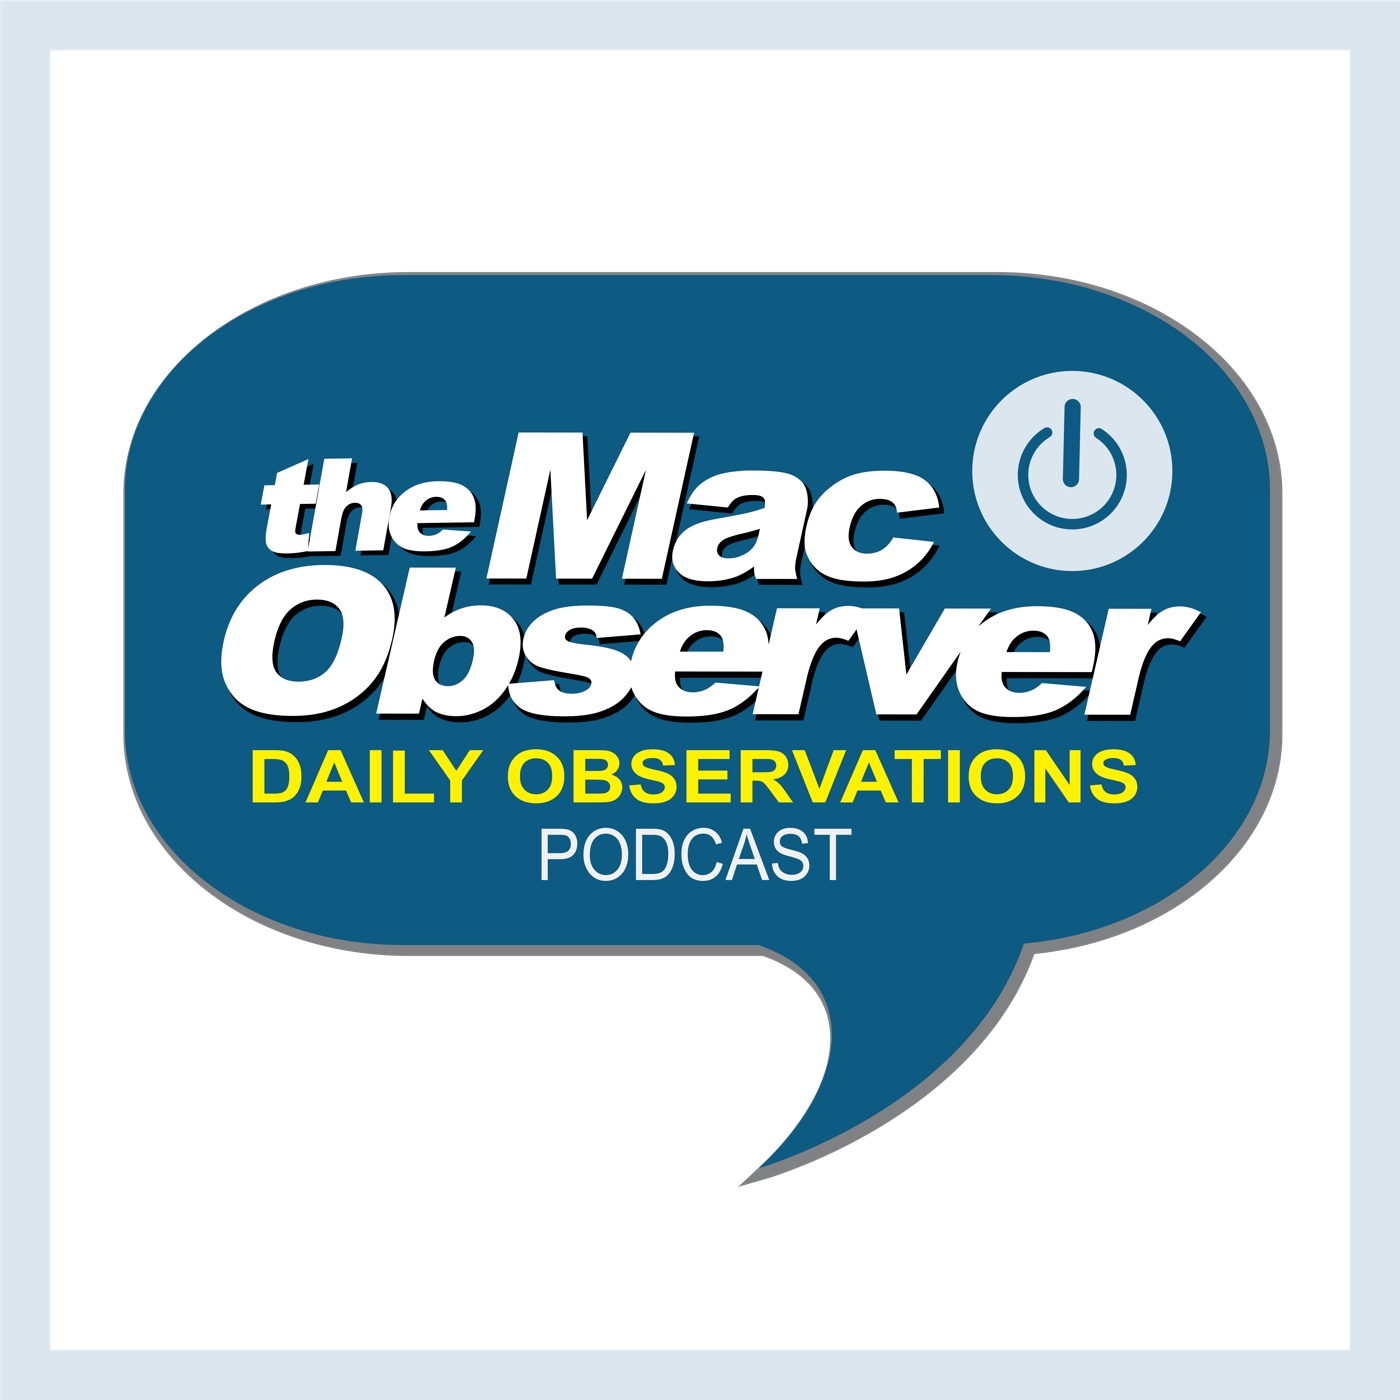 Daily Observations Podcast